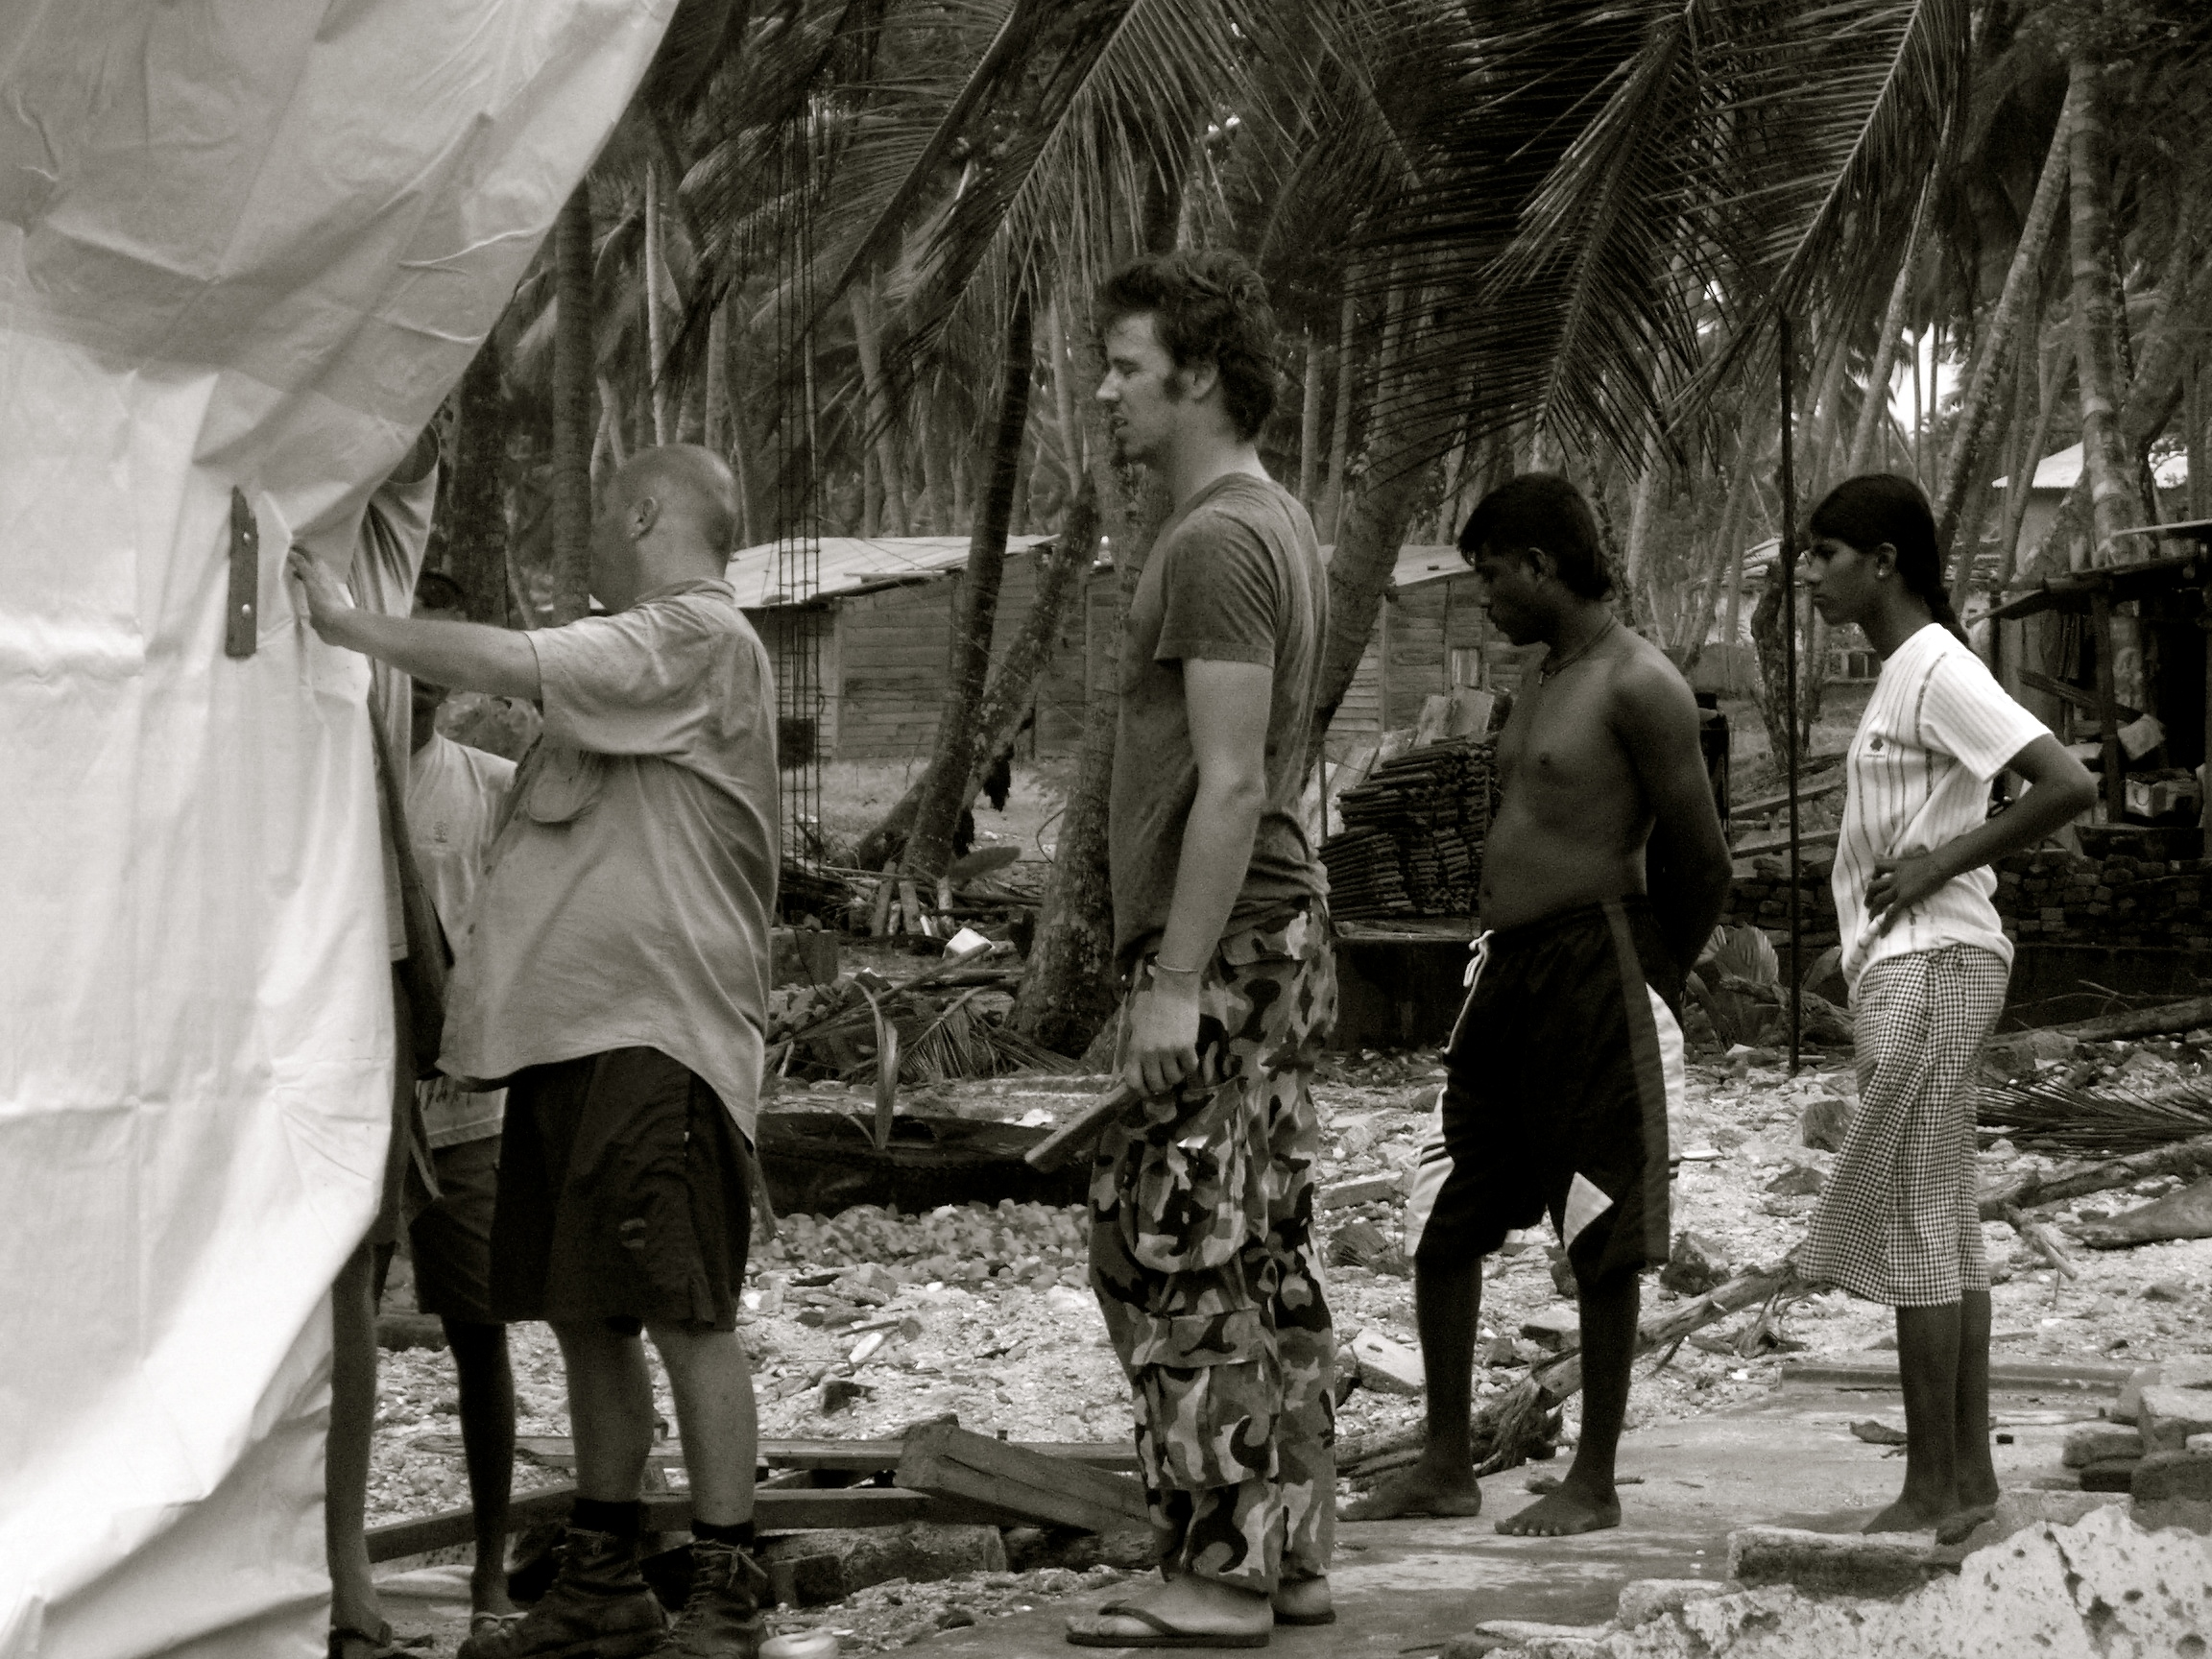 Volunteers building temporary shelters.